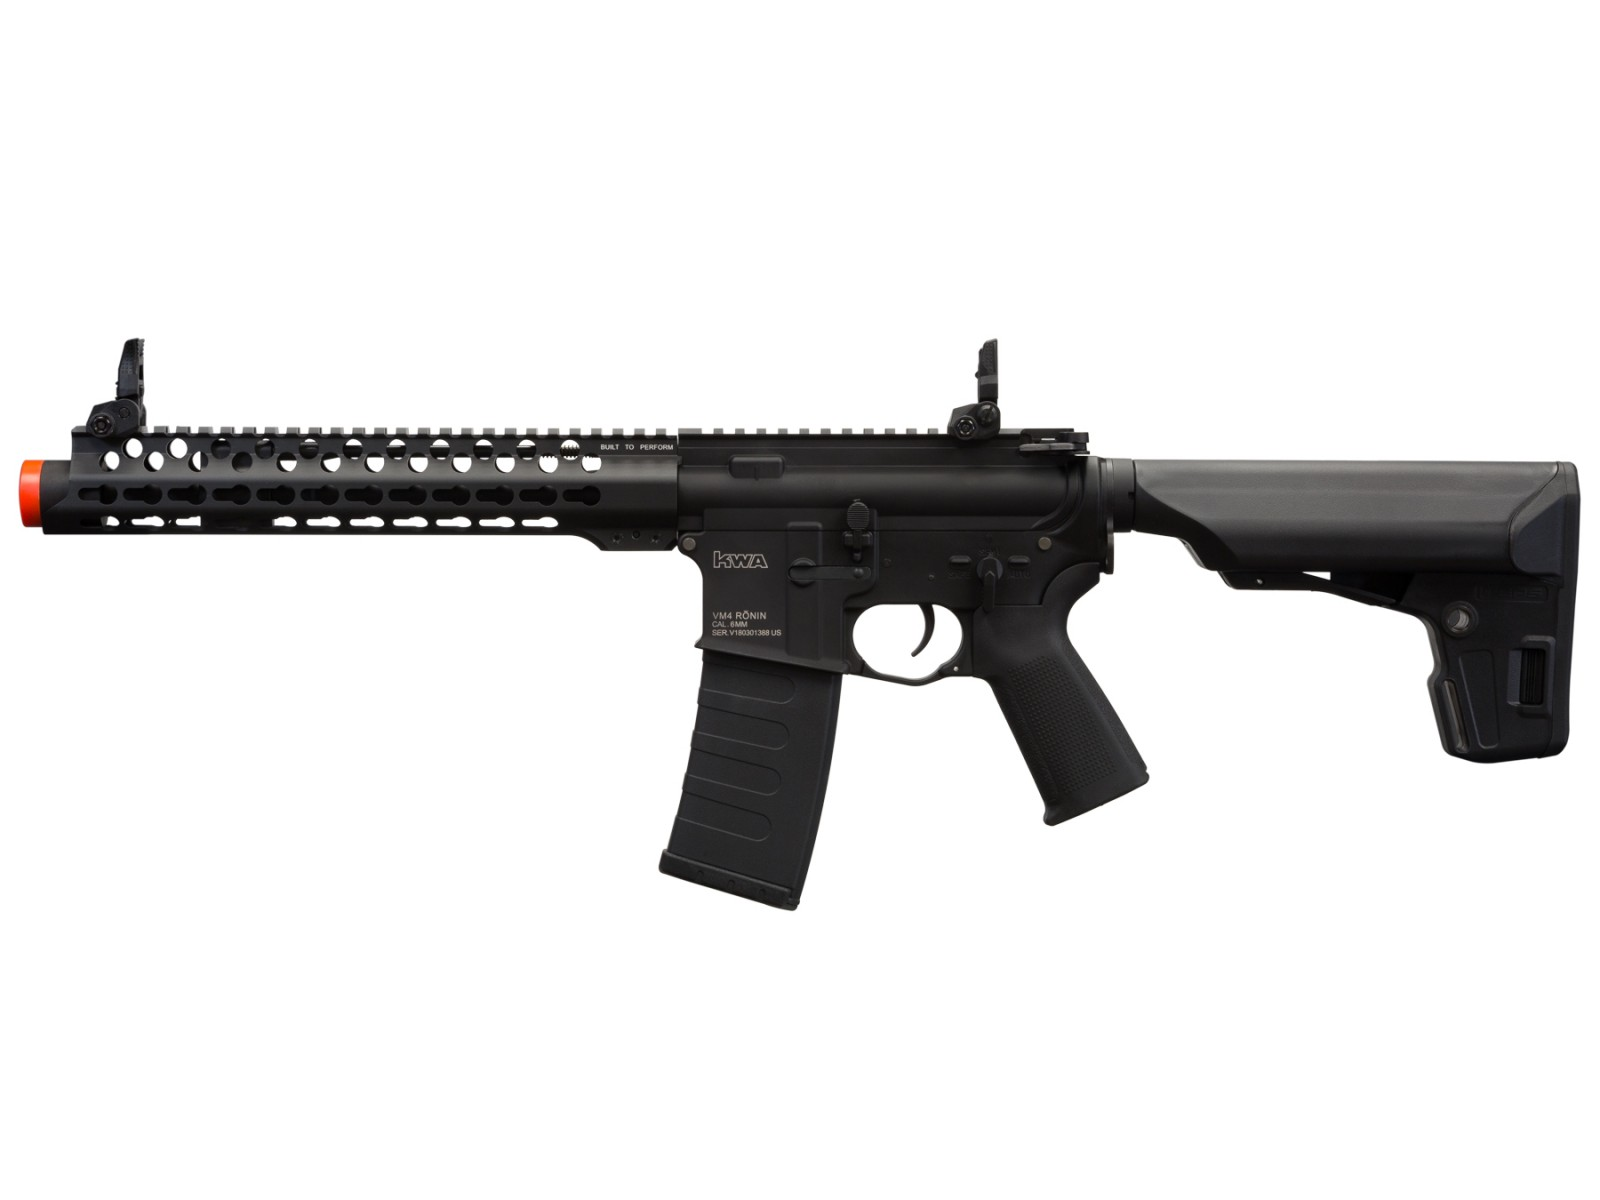 KWA VM4 Ronin 10 SBR AEG 2.5 Airsoft Rifle 6mm Image